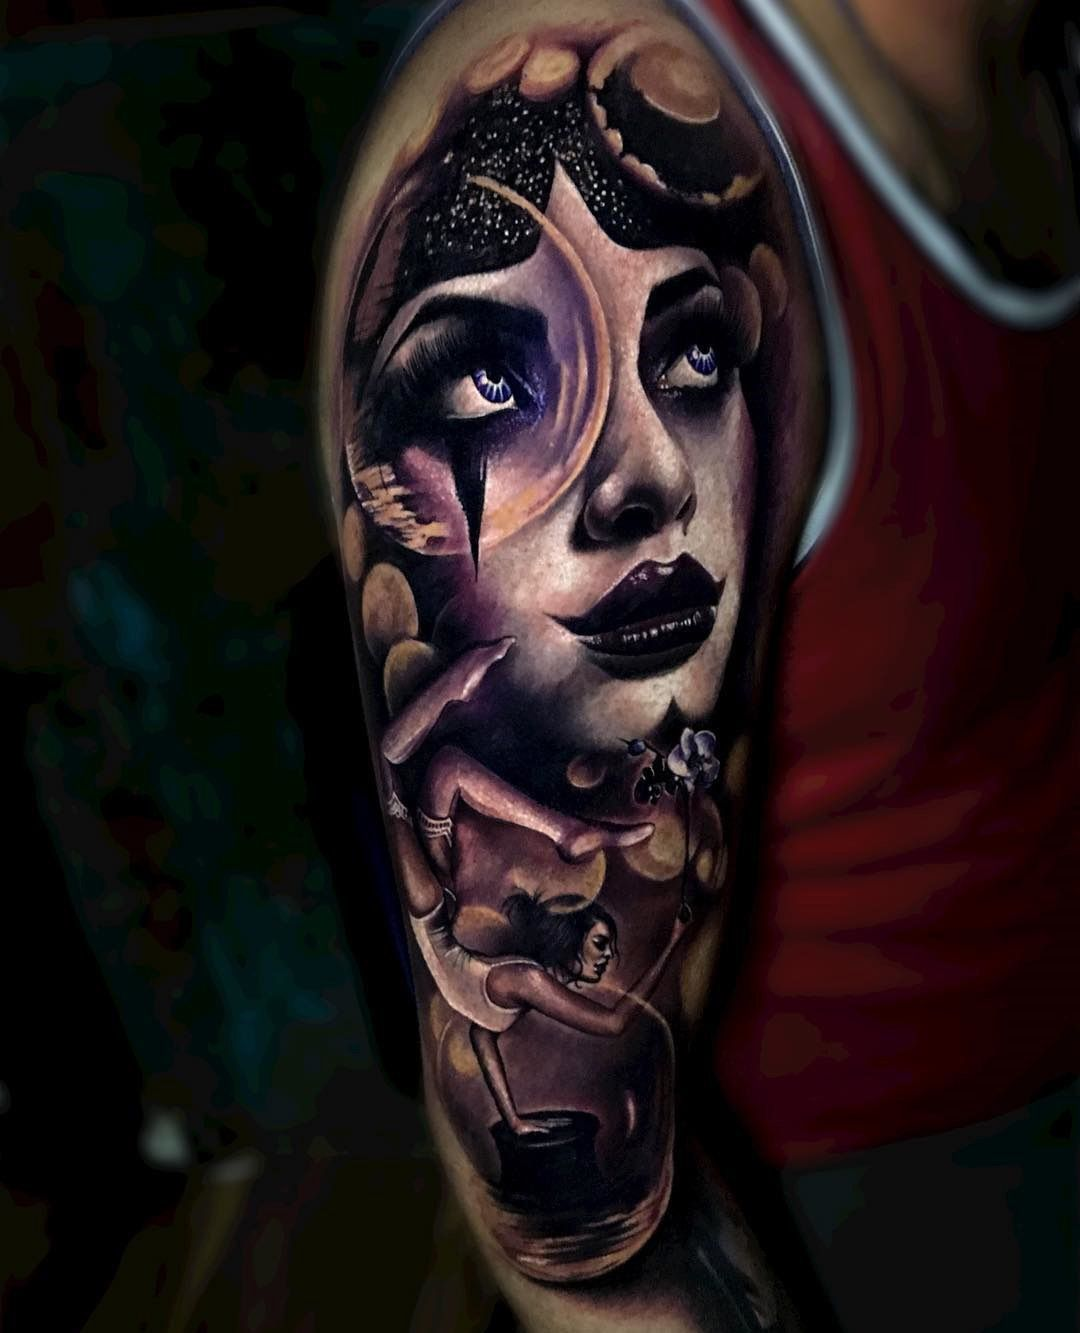 80 crazy and amazing tattoo designs for men and women desiznworld - Beautiful Magic Themed Piece With A Female Portrait And A Balancing Lady Done On Guy S Bicep